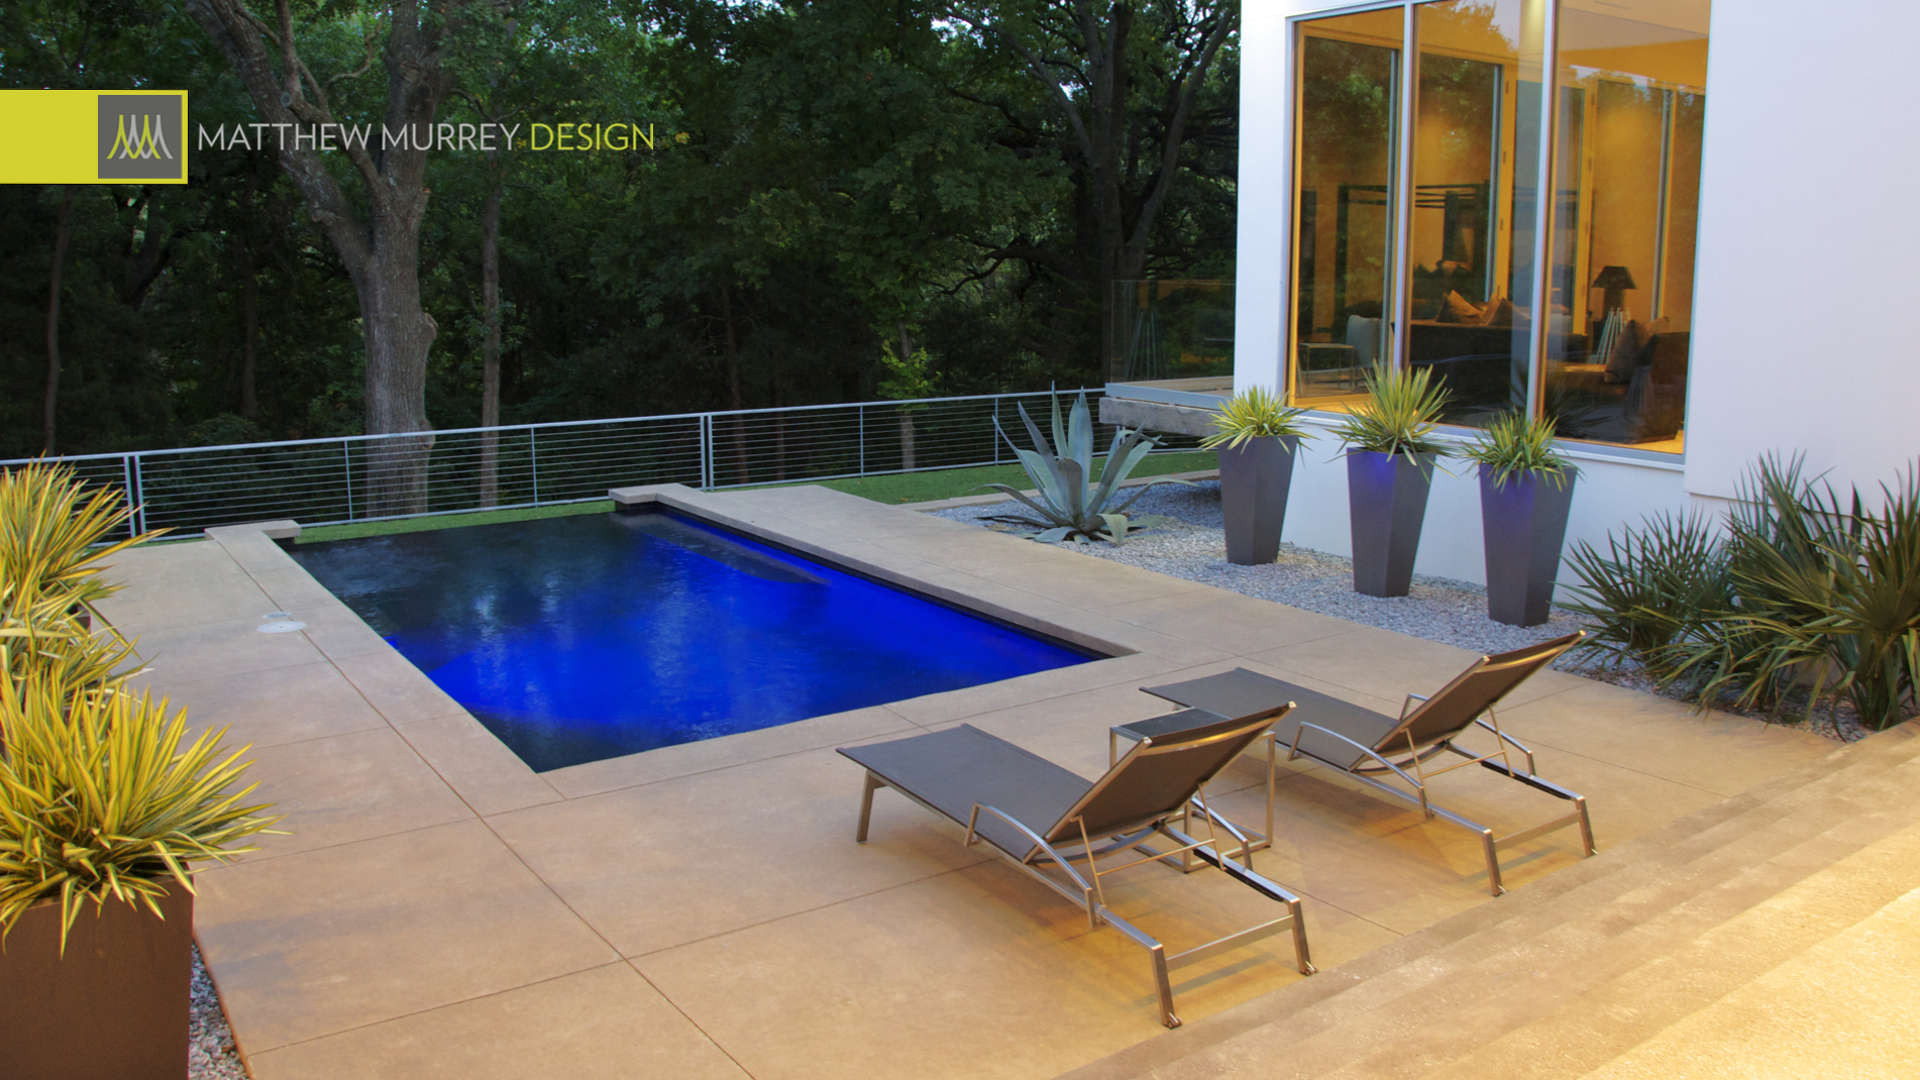 Landscape Design Dallas  Dallas Landscape Design Firm Matthew Murrey Design